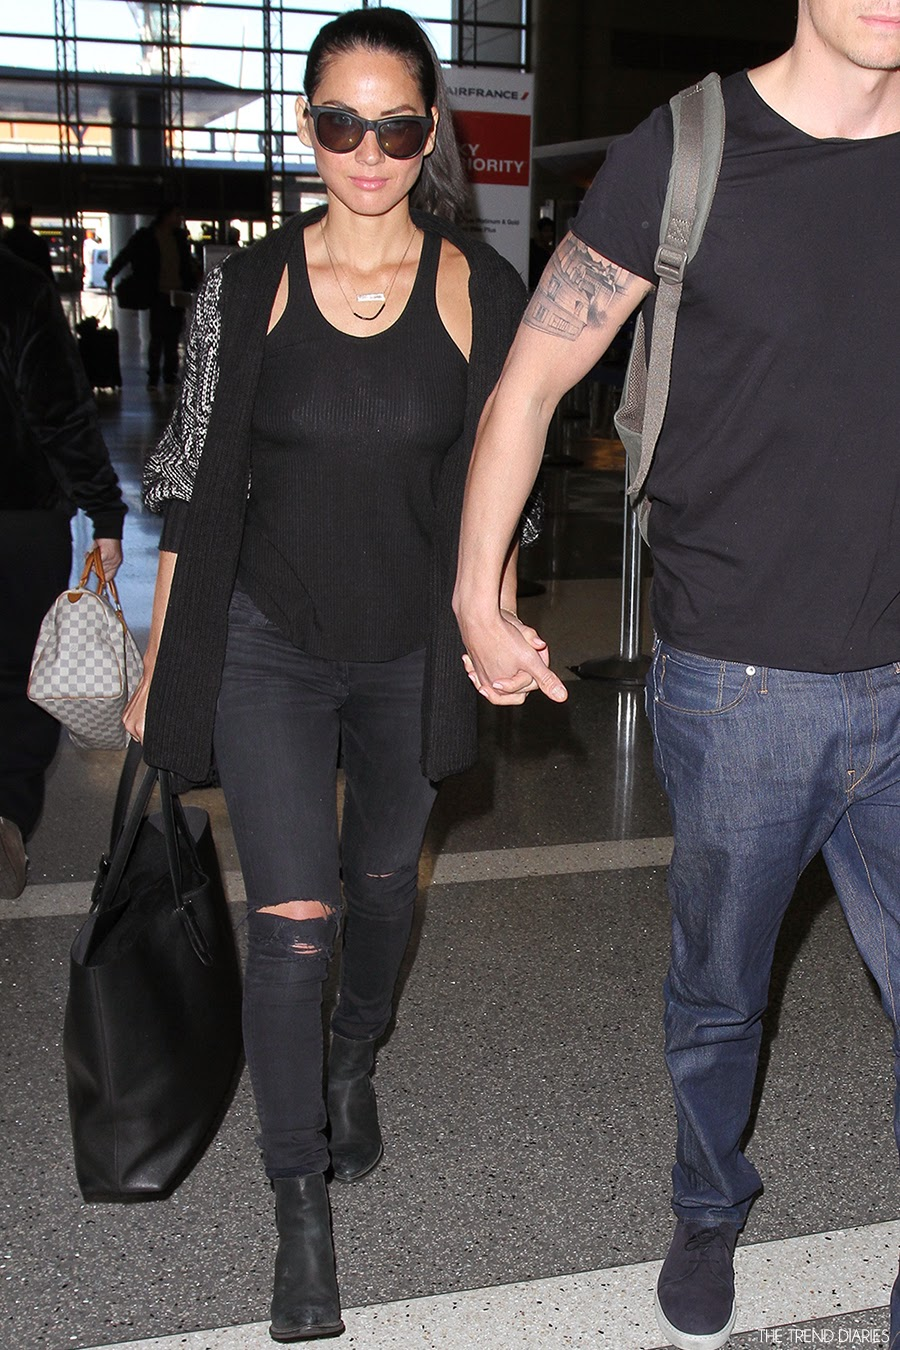 Olivia Munn At Lax Airport In Los Angeles California February 1 2014 The Trend Diaries